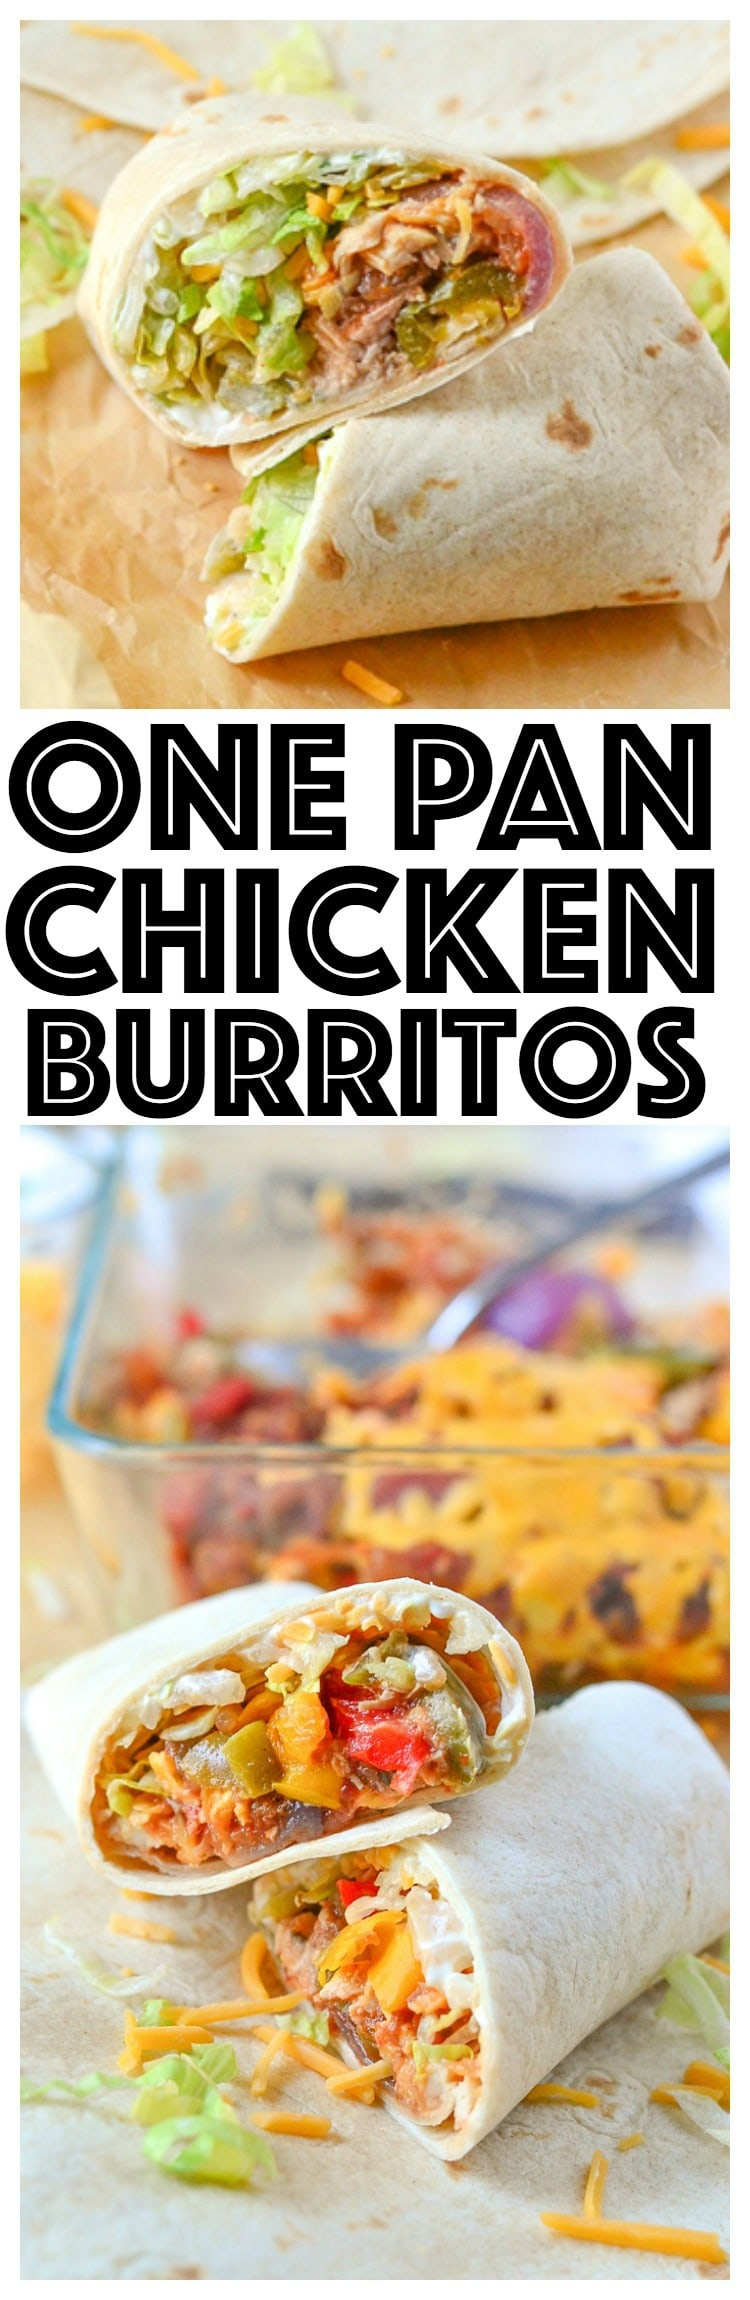 easy chicken burritos recipe chicken breasts love one pan meals? you'll love this one pan dinner recipe that cooks up in less than 30 mins